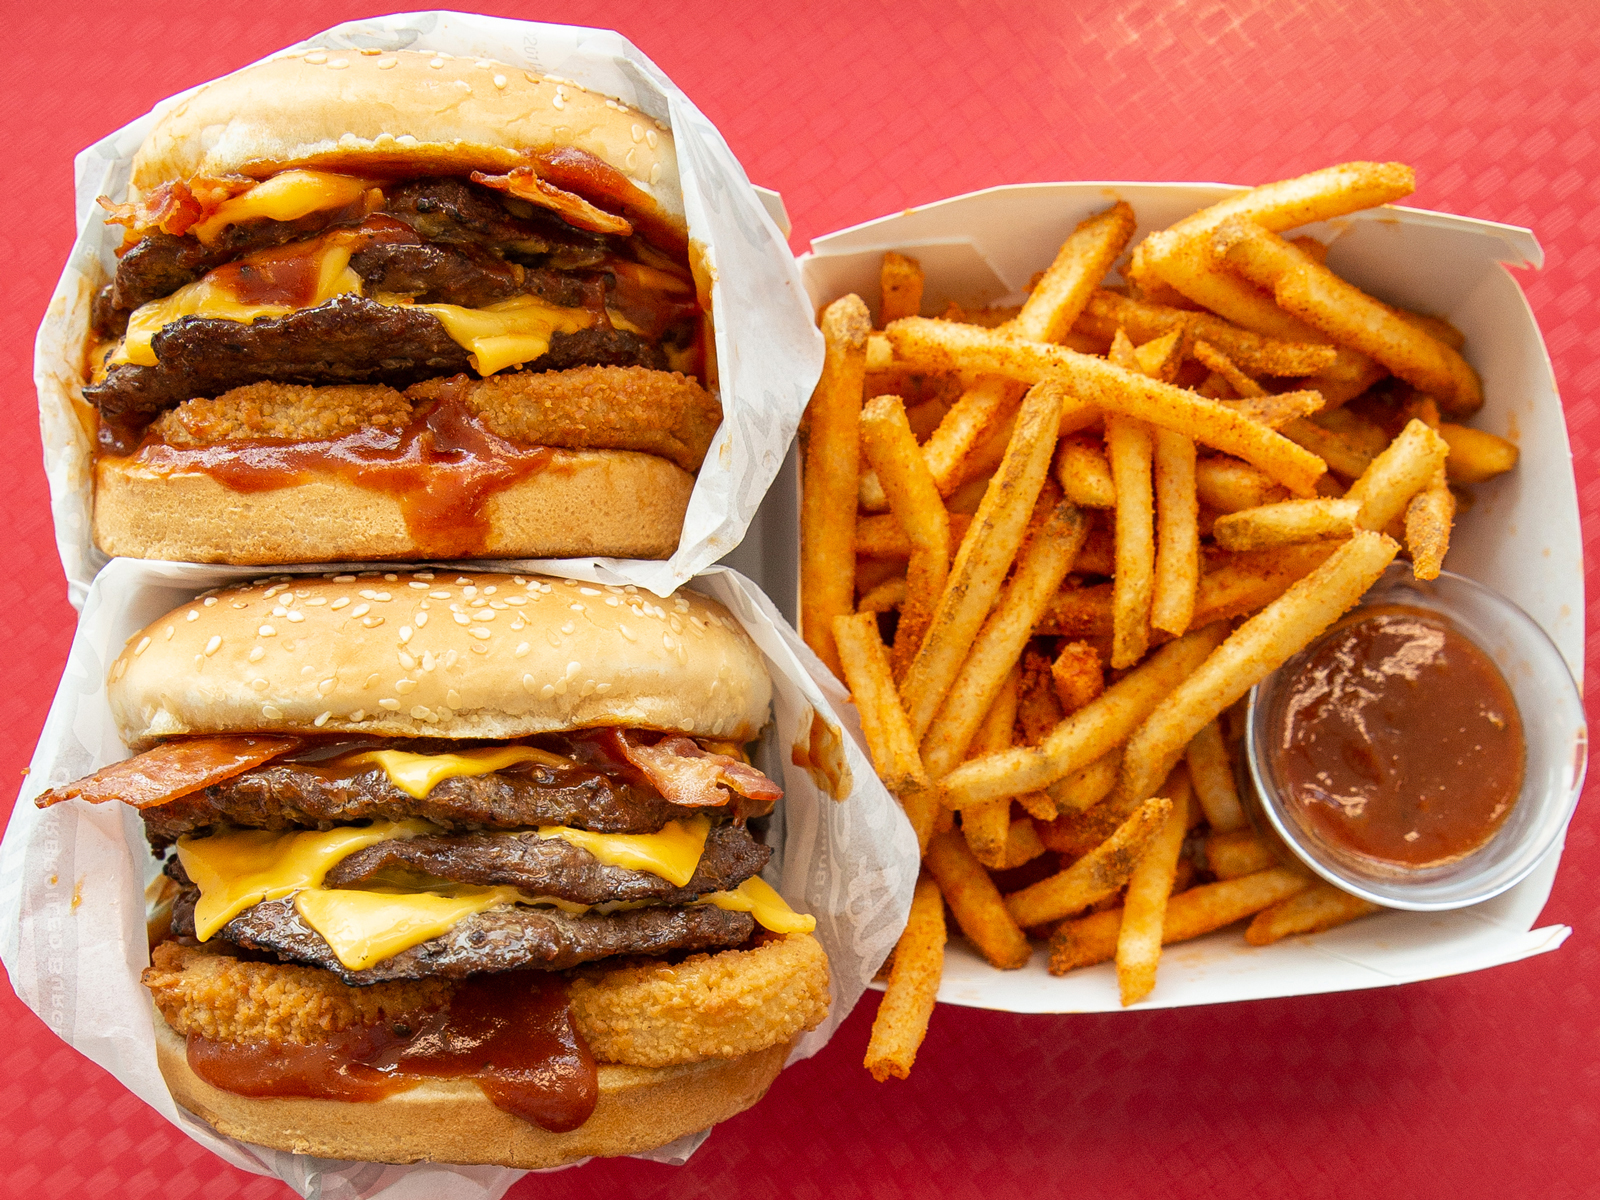 carls-jr-western-bacon-fries-FT-BLOG0519.jpg